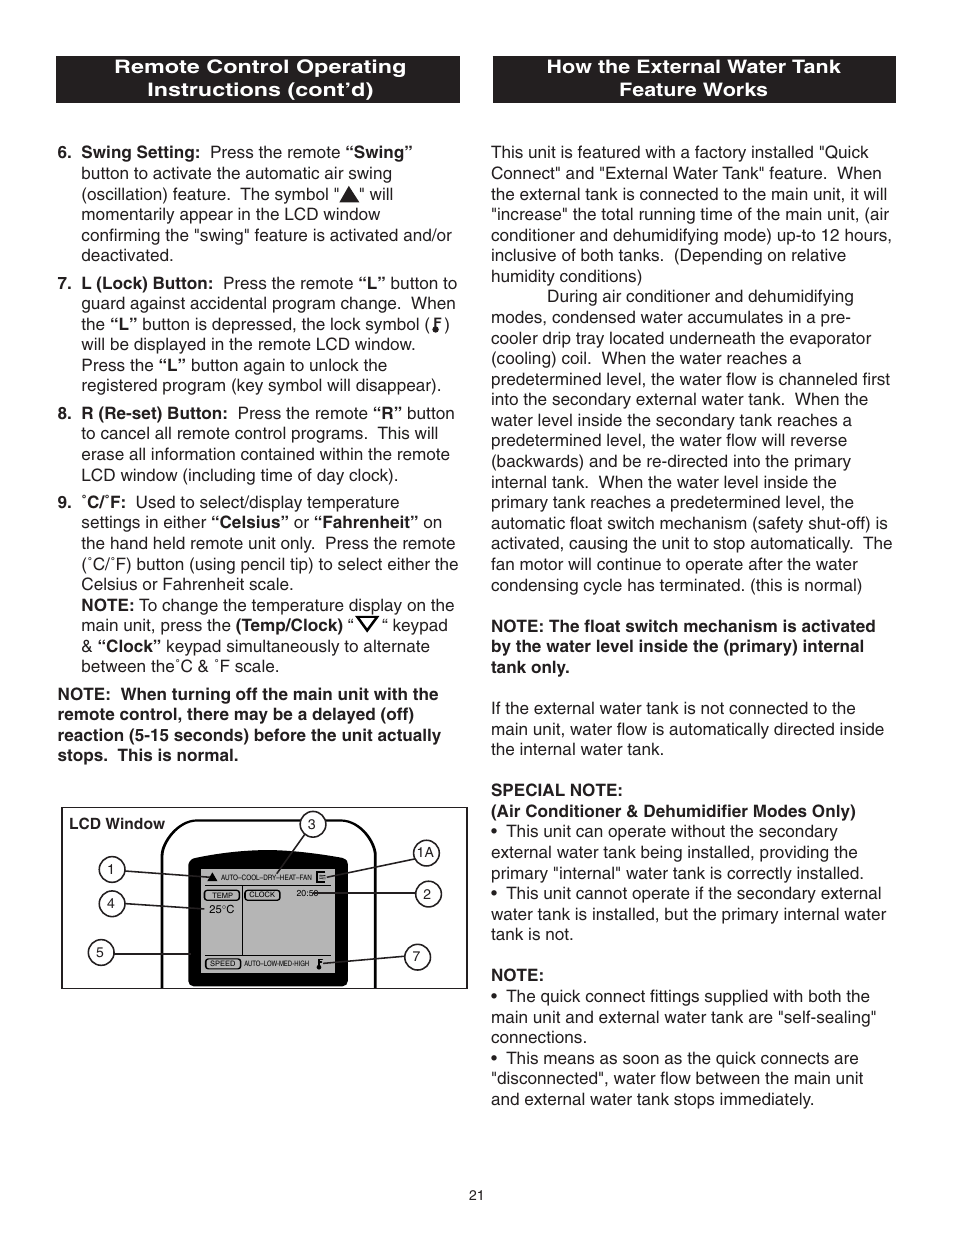 Remote control operating instructions (cont'd), How the